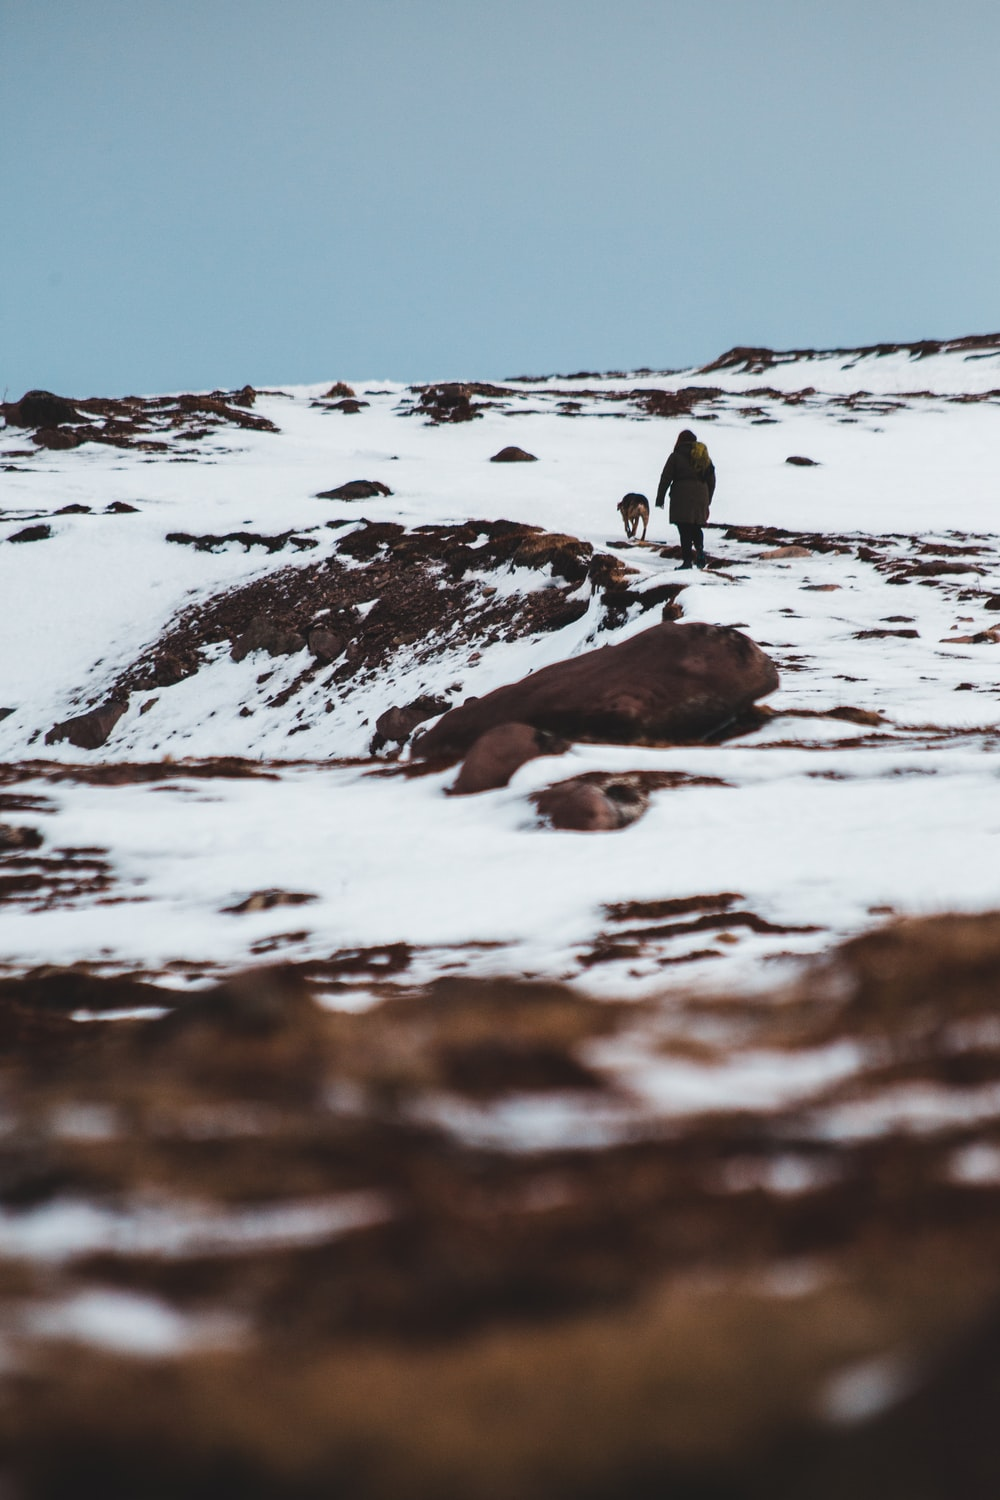 person along with animal on snow covered terrain at daytime